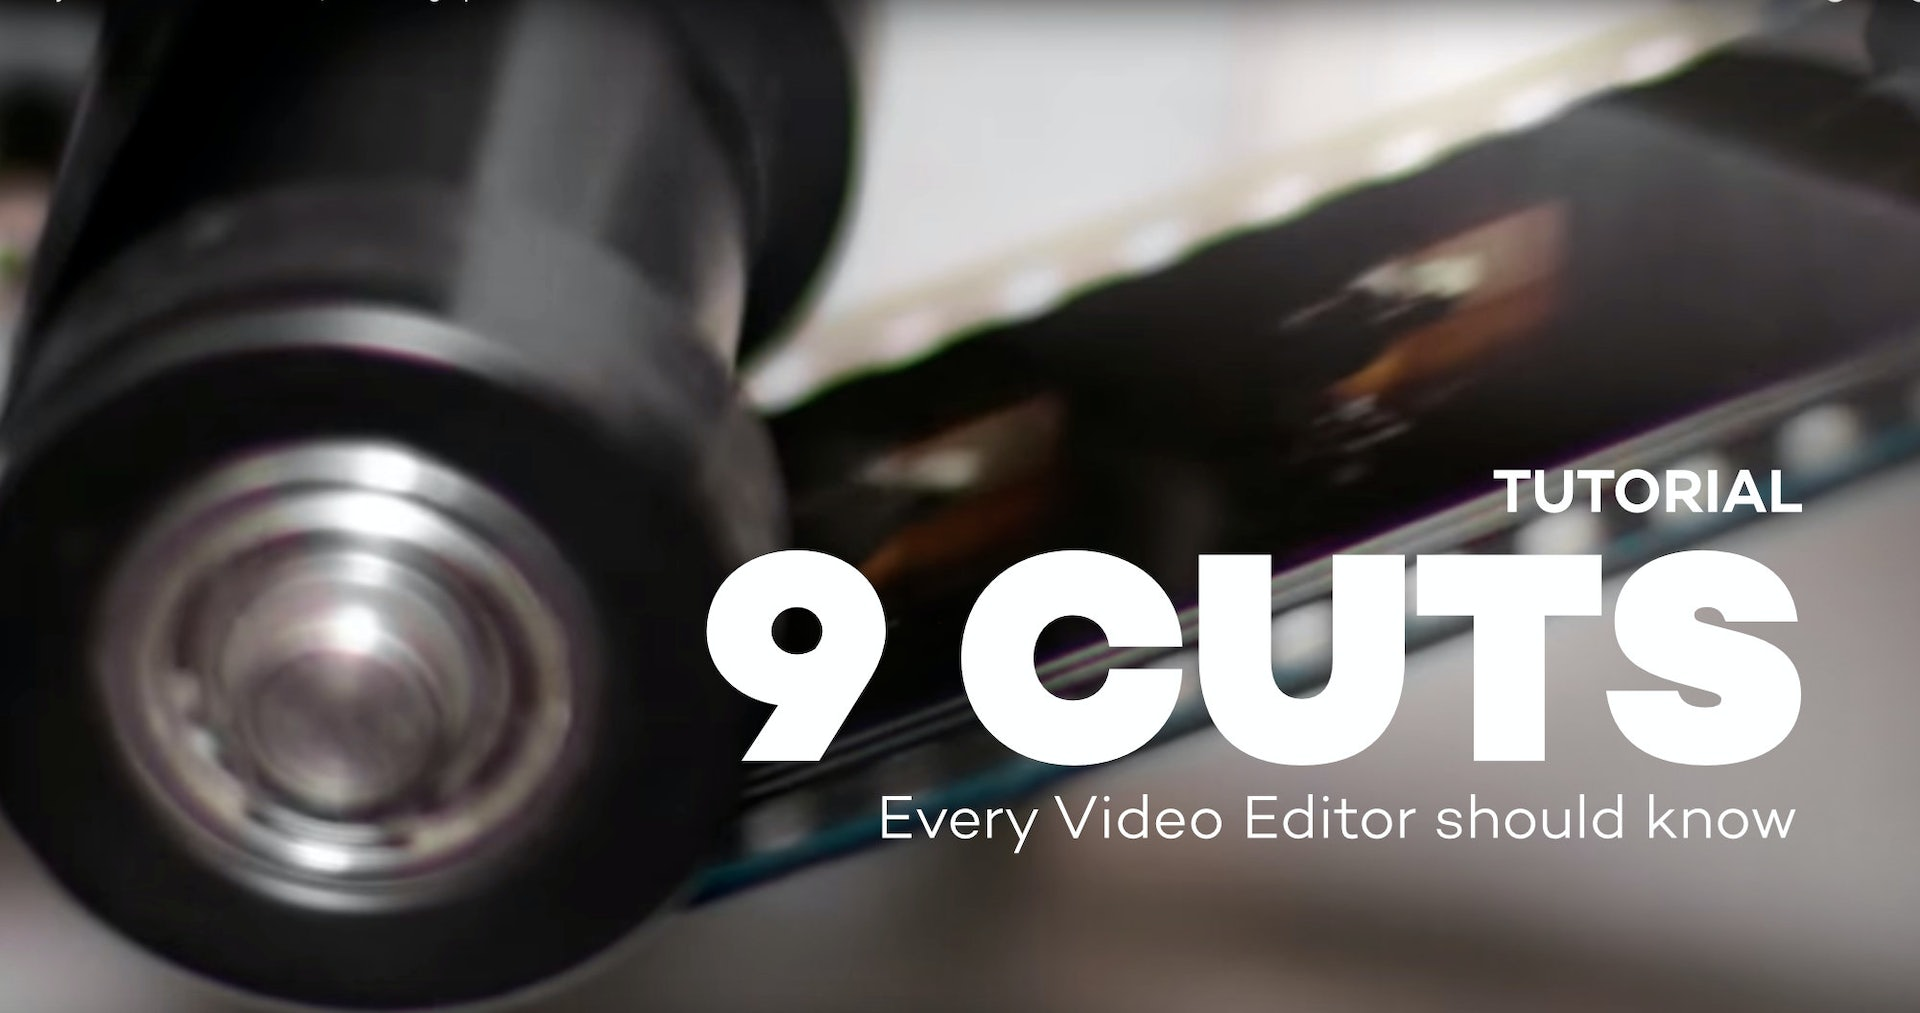 9 Cuts every video editor should know